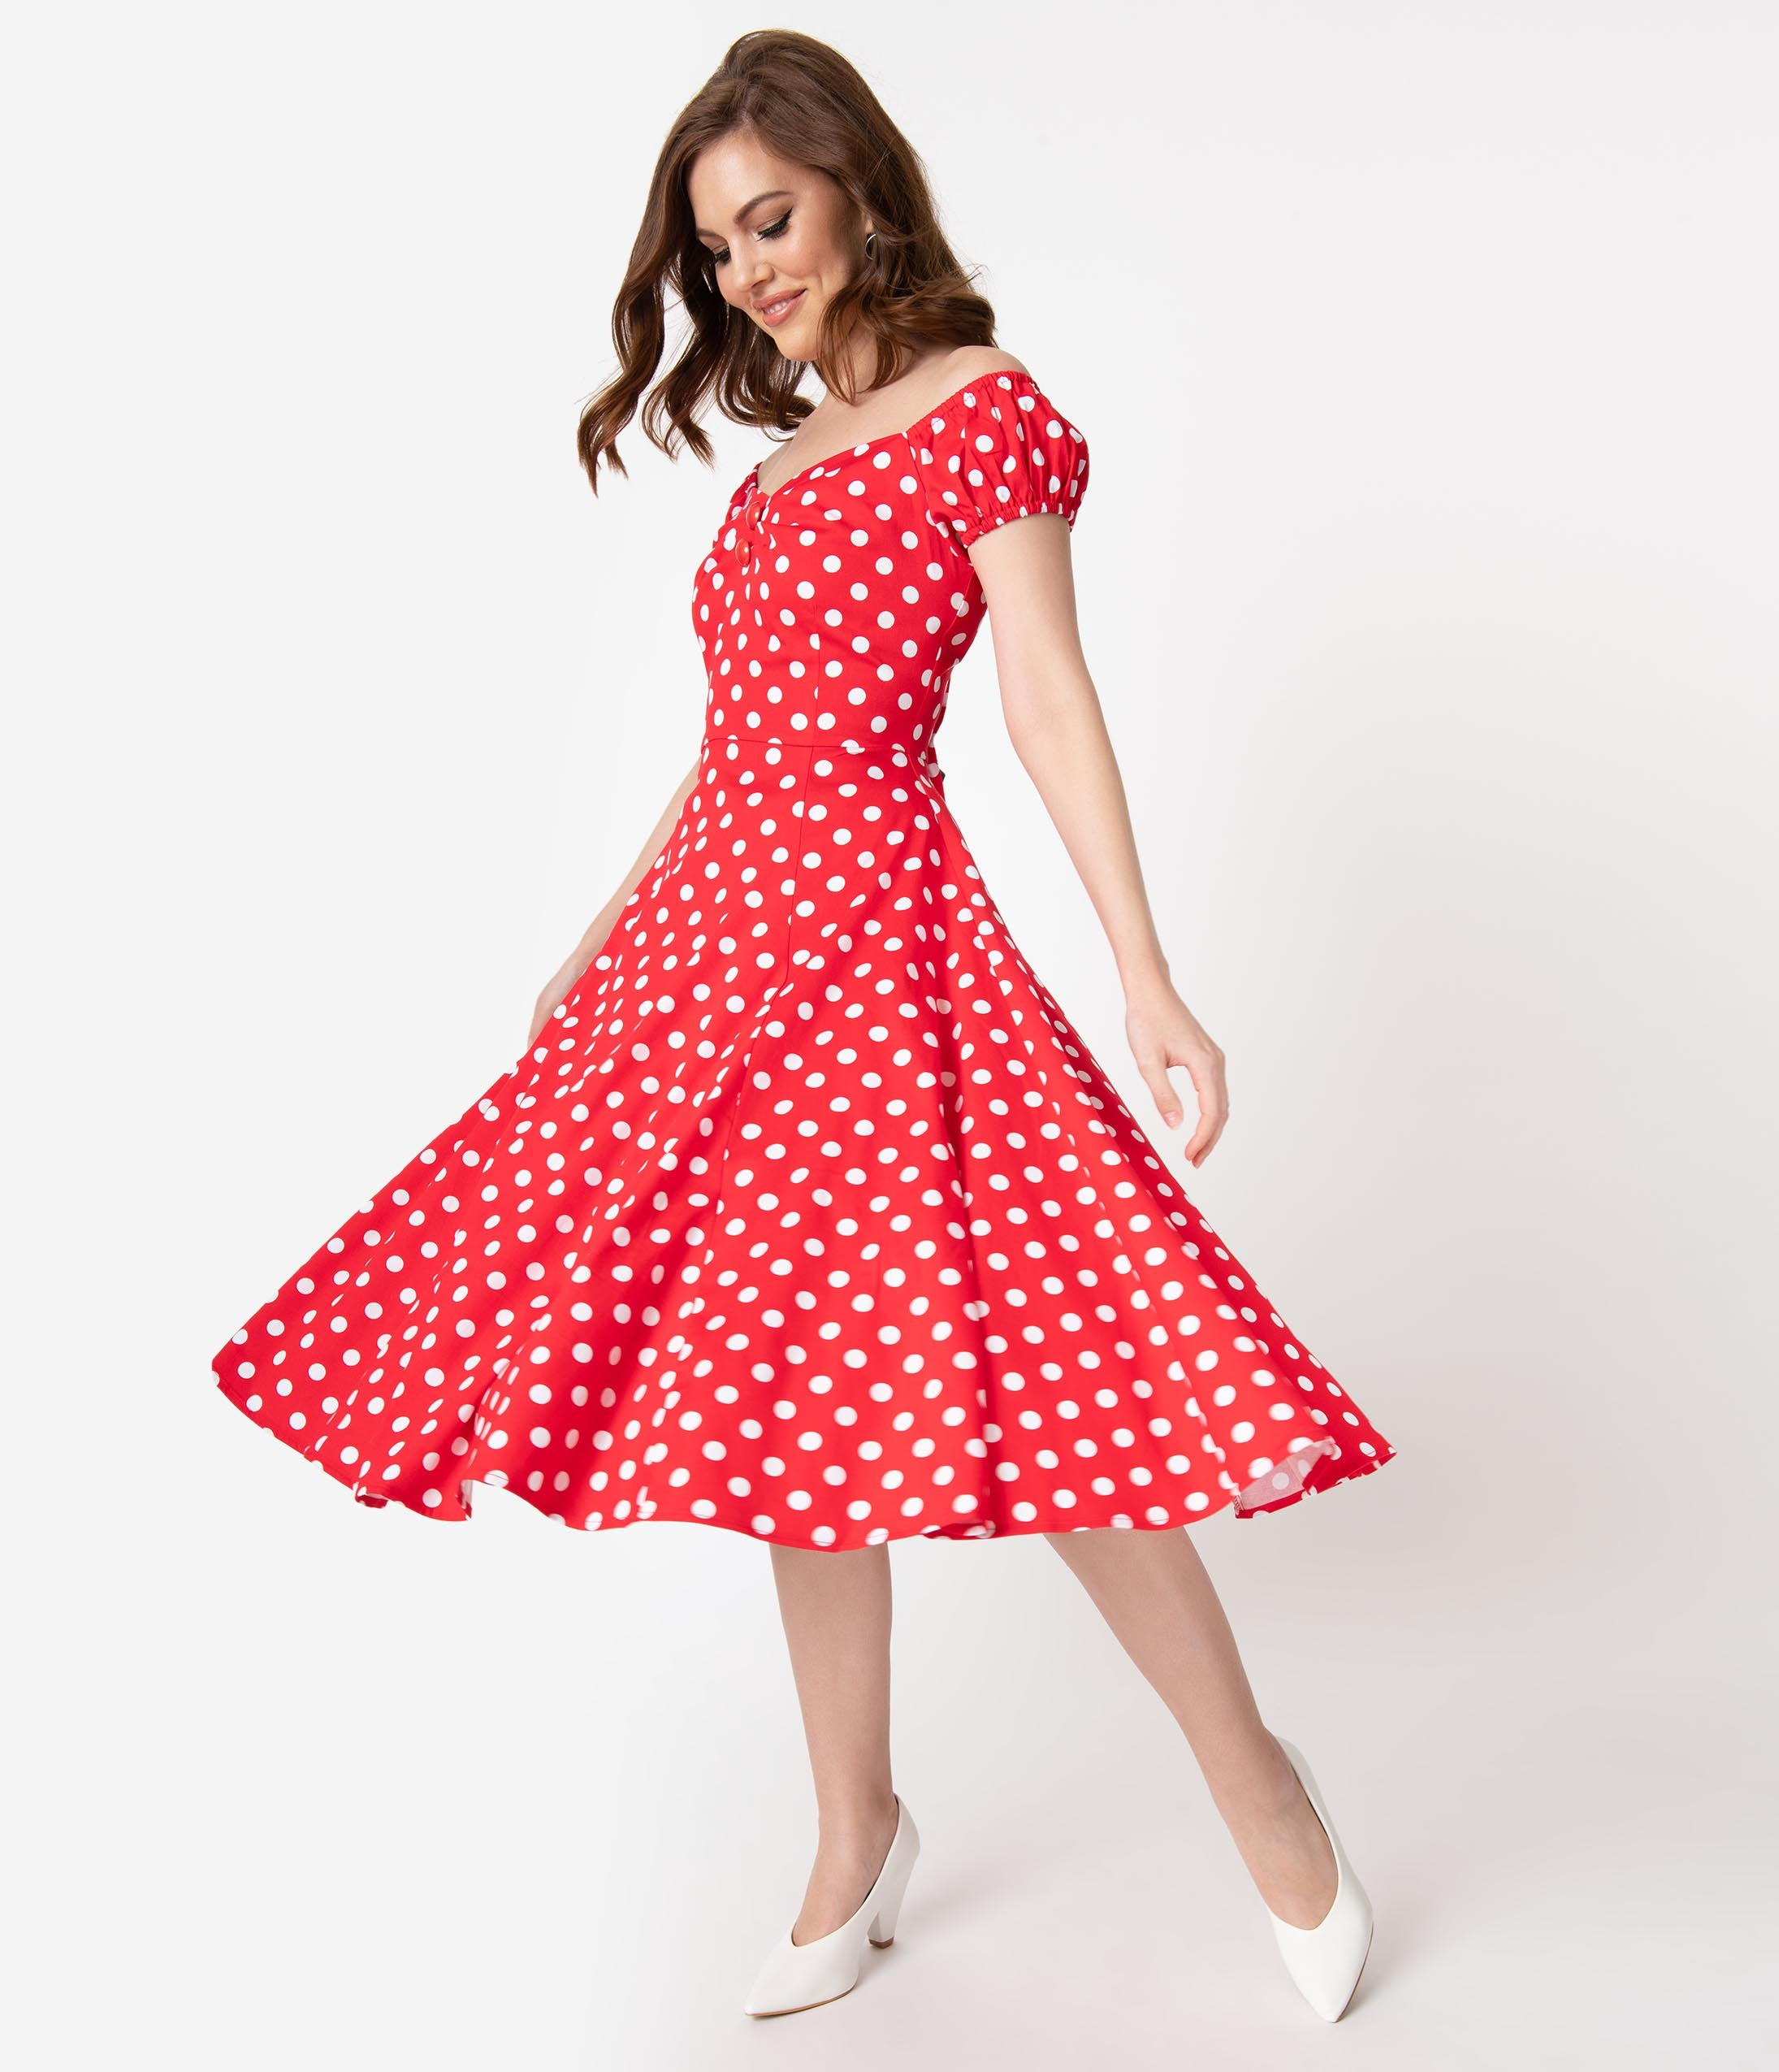 Rockabilly Dresses | Rockabilly Clothing | Viva Las Vegas Collectif 1950S Style Red  White Polka Dot Dolores Swing Dress $68.00 AT vintagedancer.com